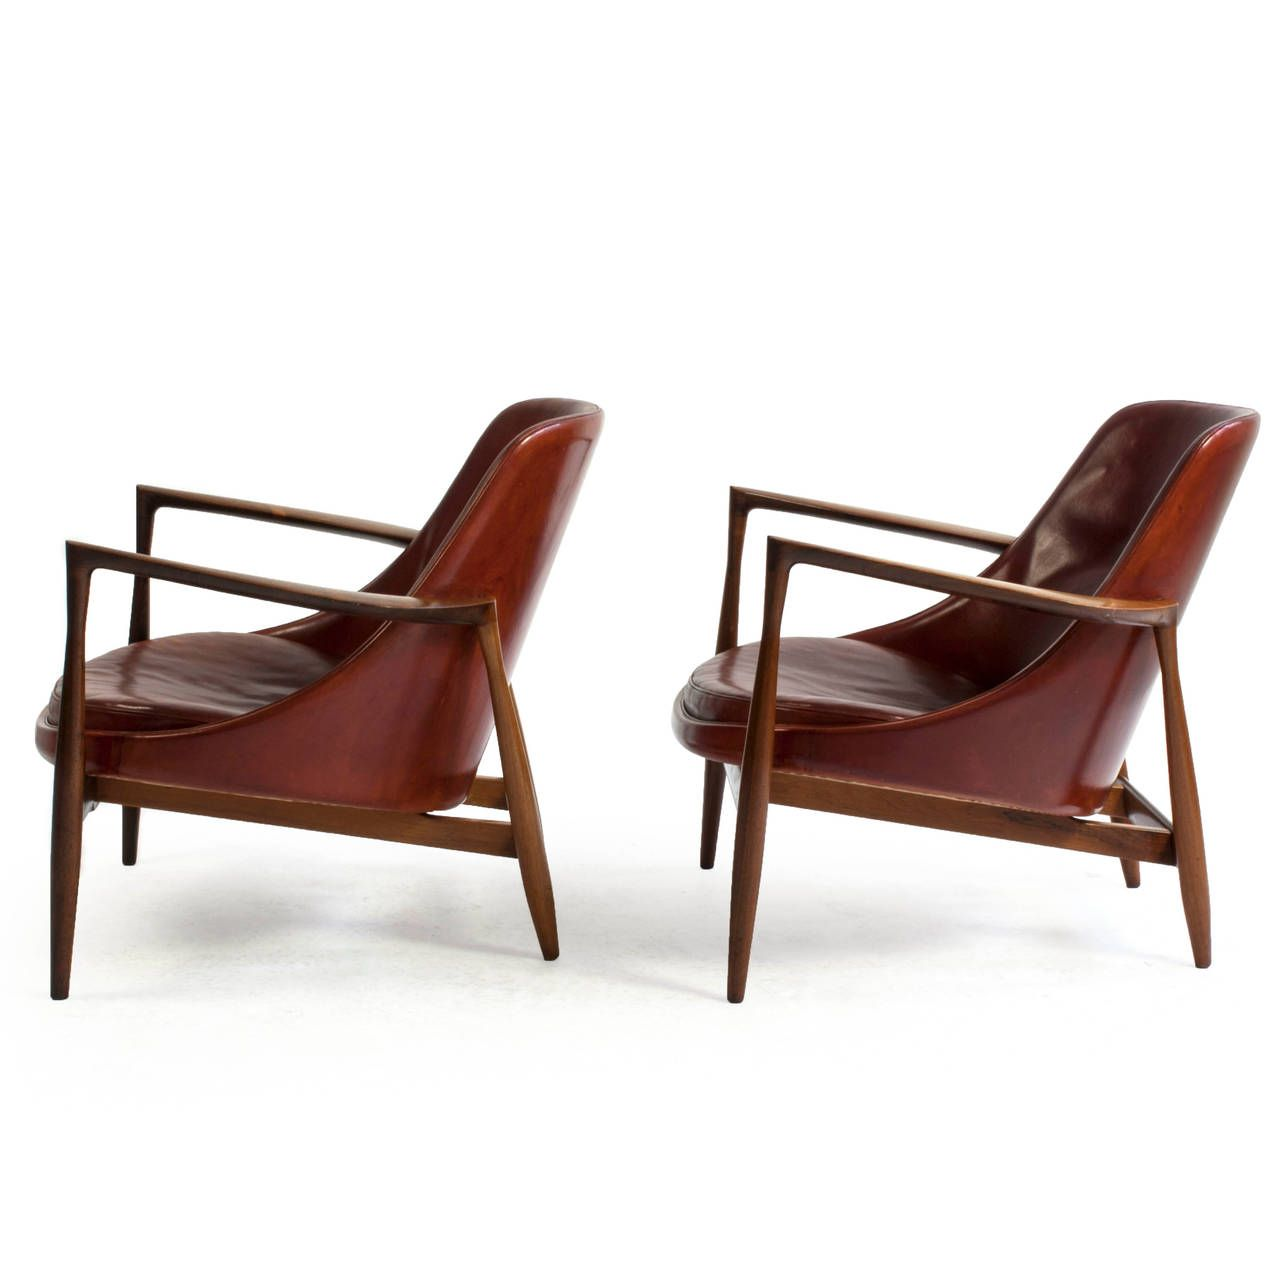 This sculptural pair of lounge chairs by ib kofod larsen is no longer - Pair Of Rosewood Ib Kofod Larsen Elizabeth Chairs